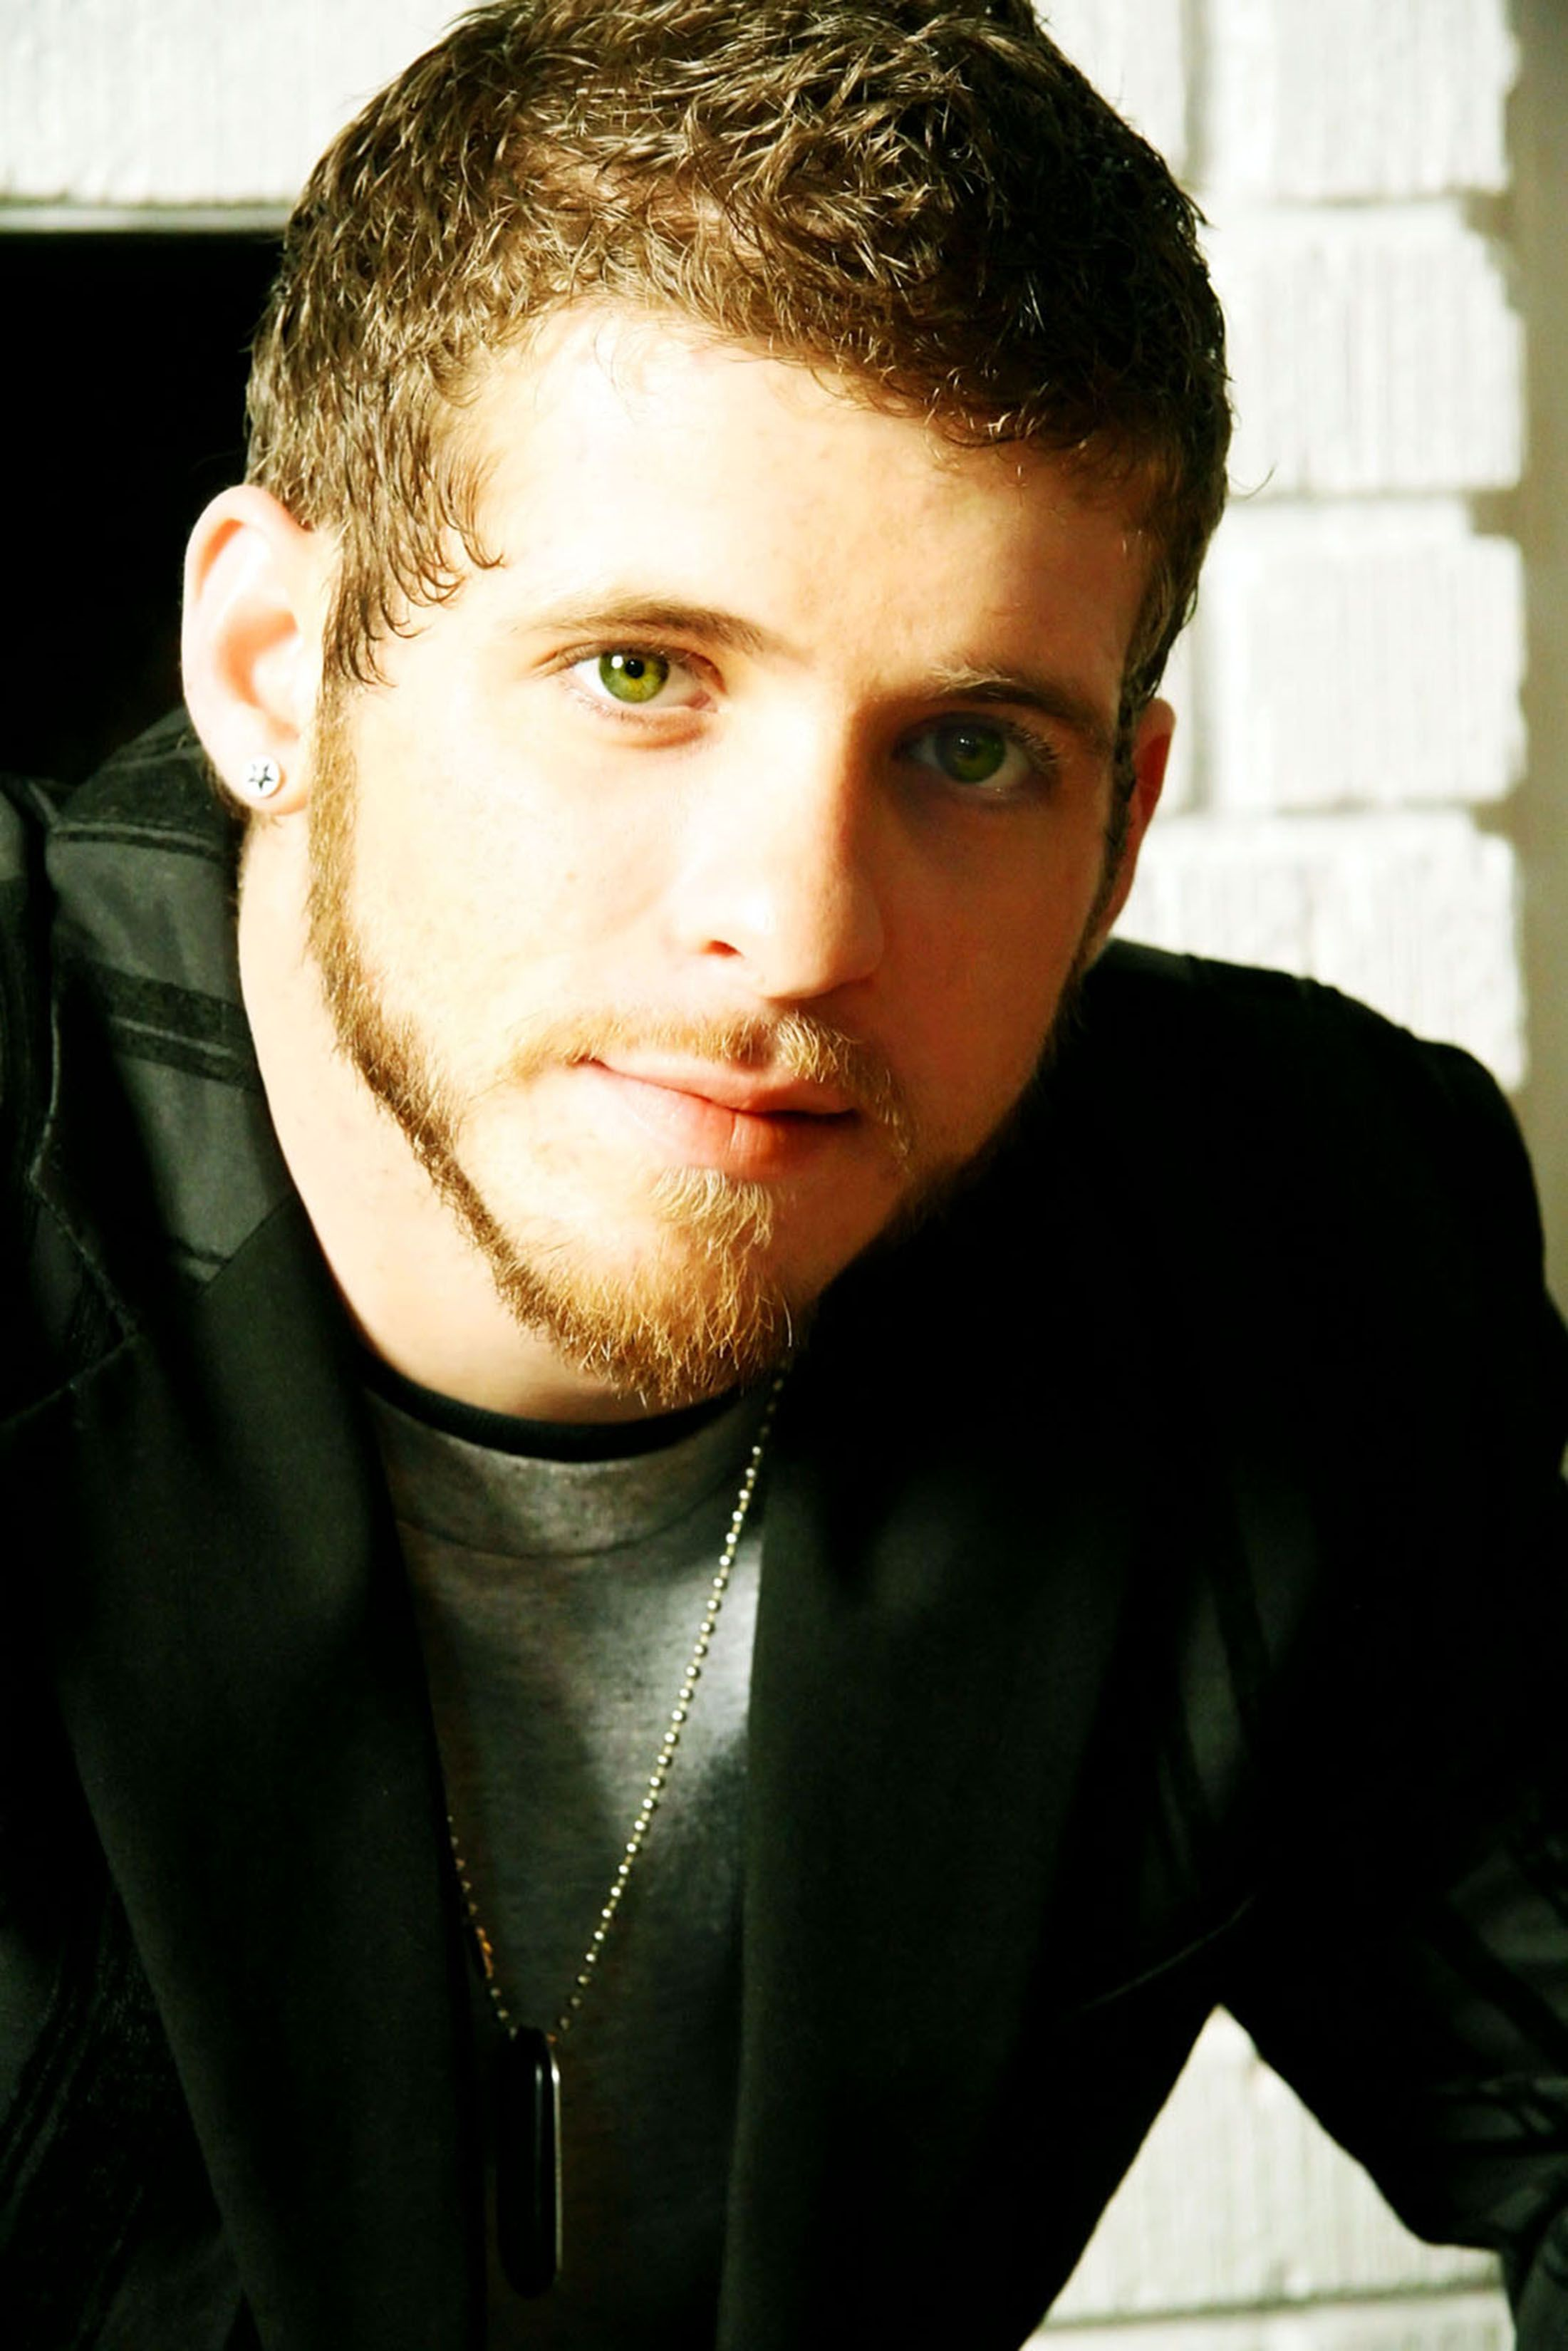 Brantley Gilbert, without his trademark ball cap